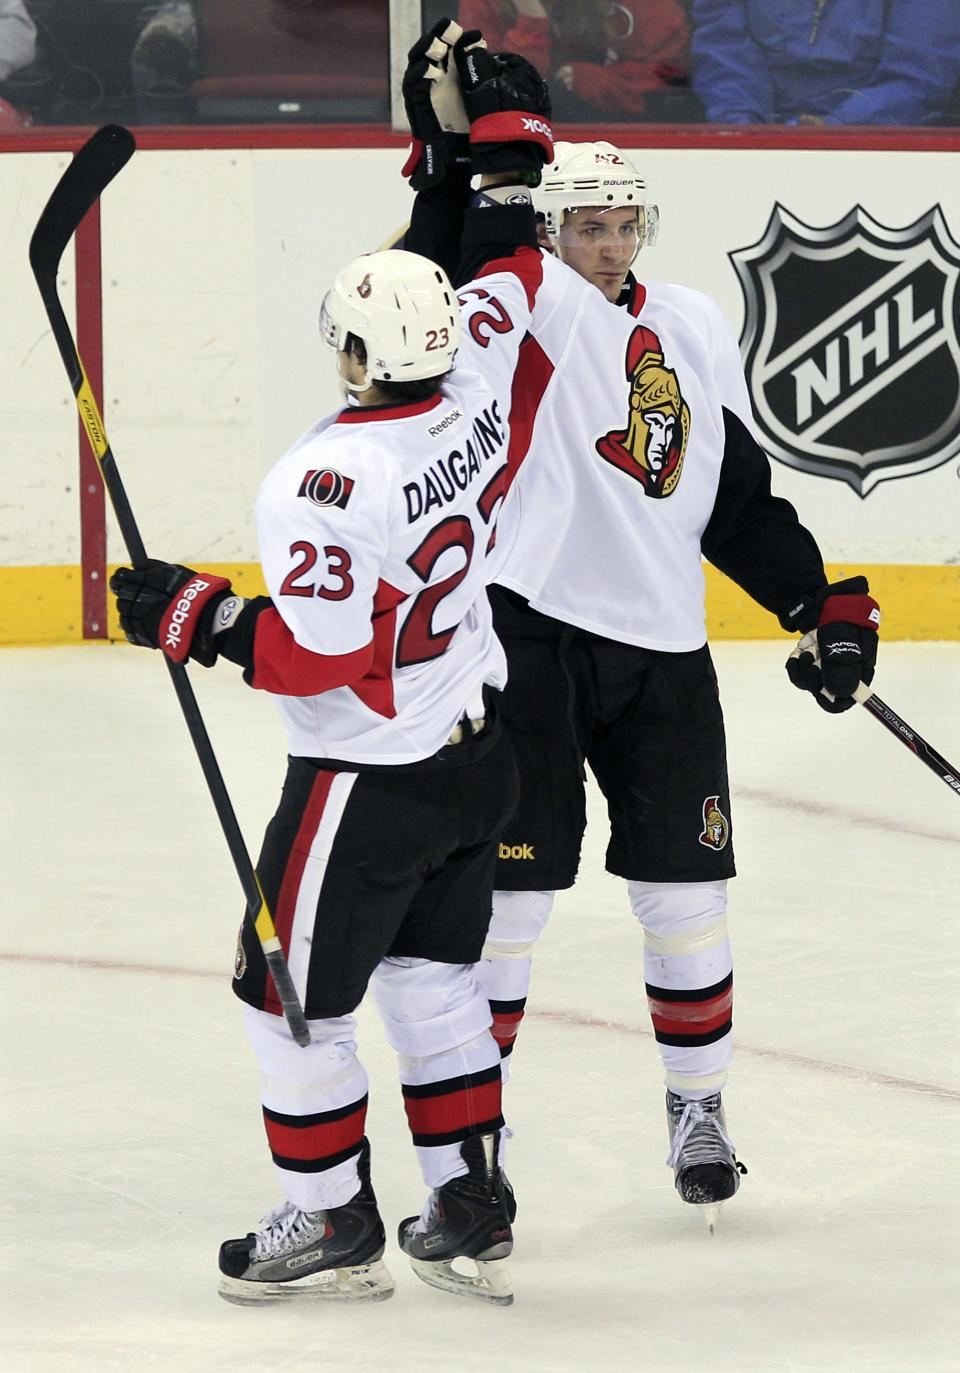 Ottawa Senators' Kaspars Daugavins (23), of Latvia, celebrates a goal by Jim O'Brien, right, during the second period of an NHL hockey game against the New Jersey Devils in Newark, N.J., Saturday, April 7, 2012. (AP Photo/Mel Evans)